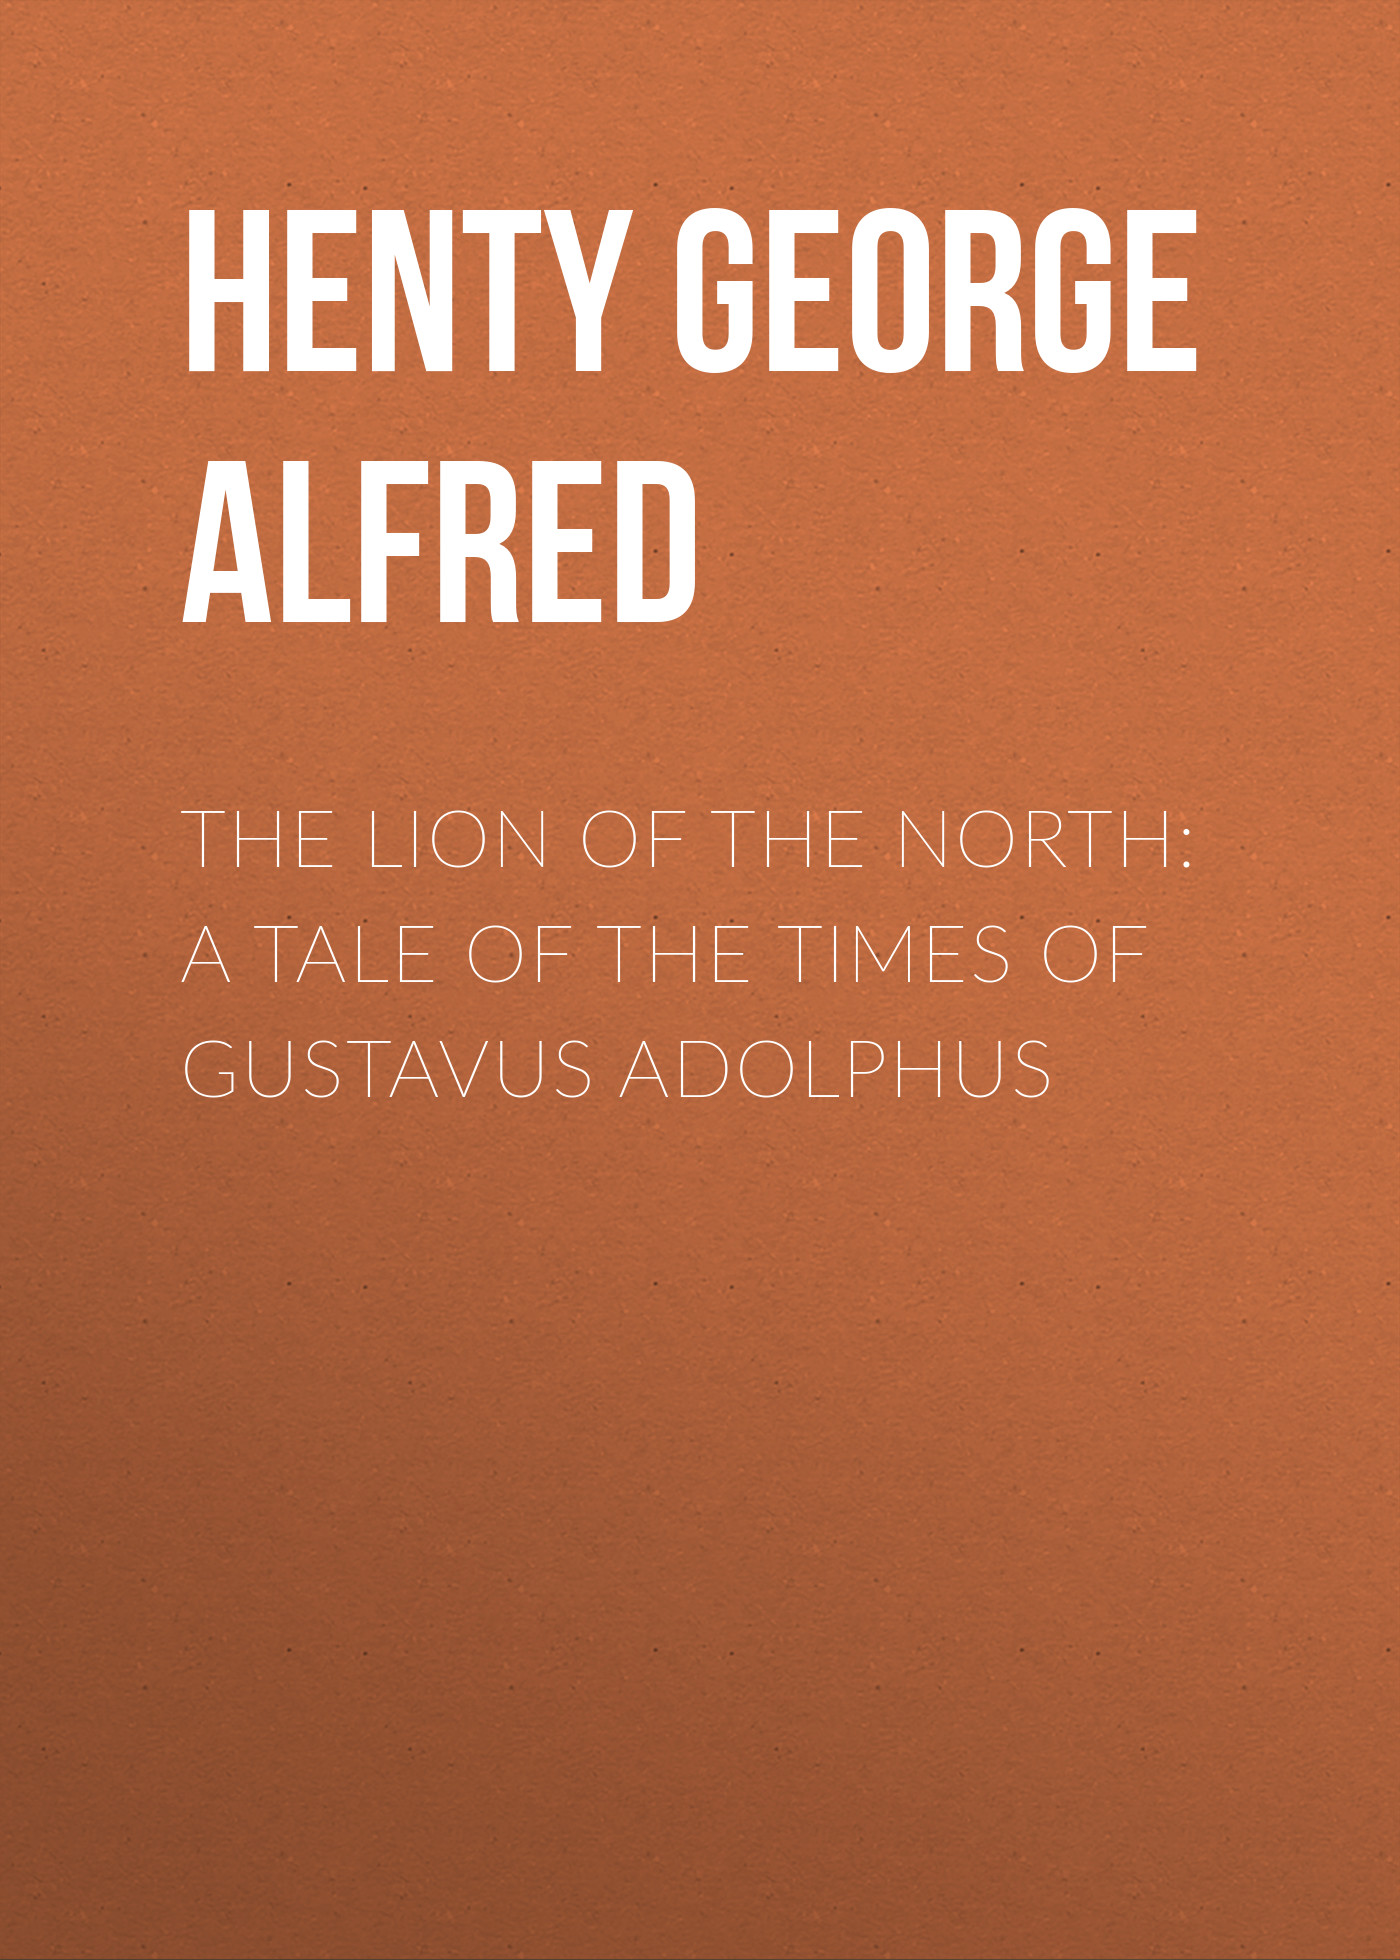 Henty George Alfred The Lion of the North: A Tale of the Times of Gustavus Adolphus henty george alfred in the reign of terror the adventures of a westminster boy